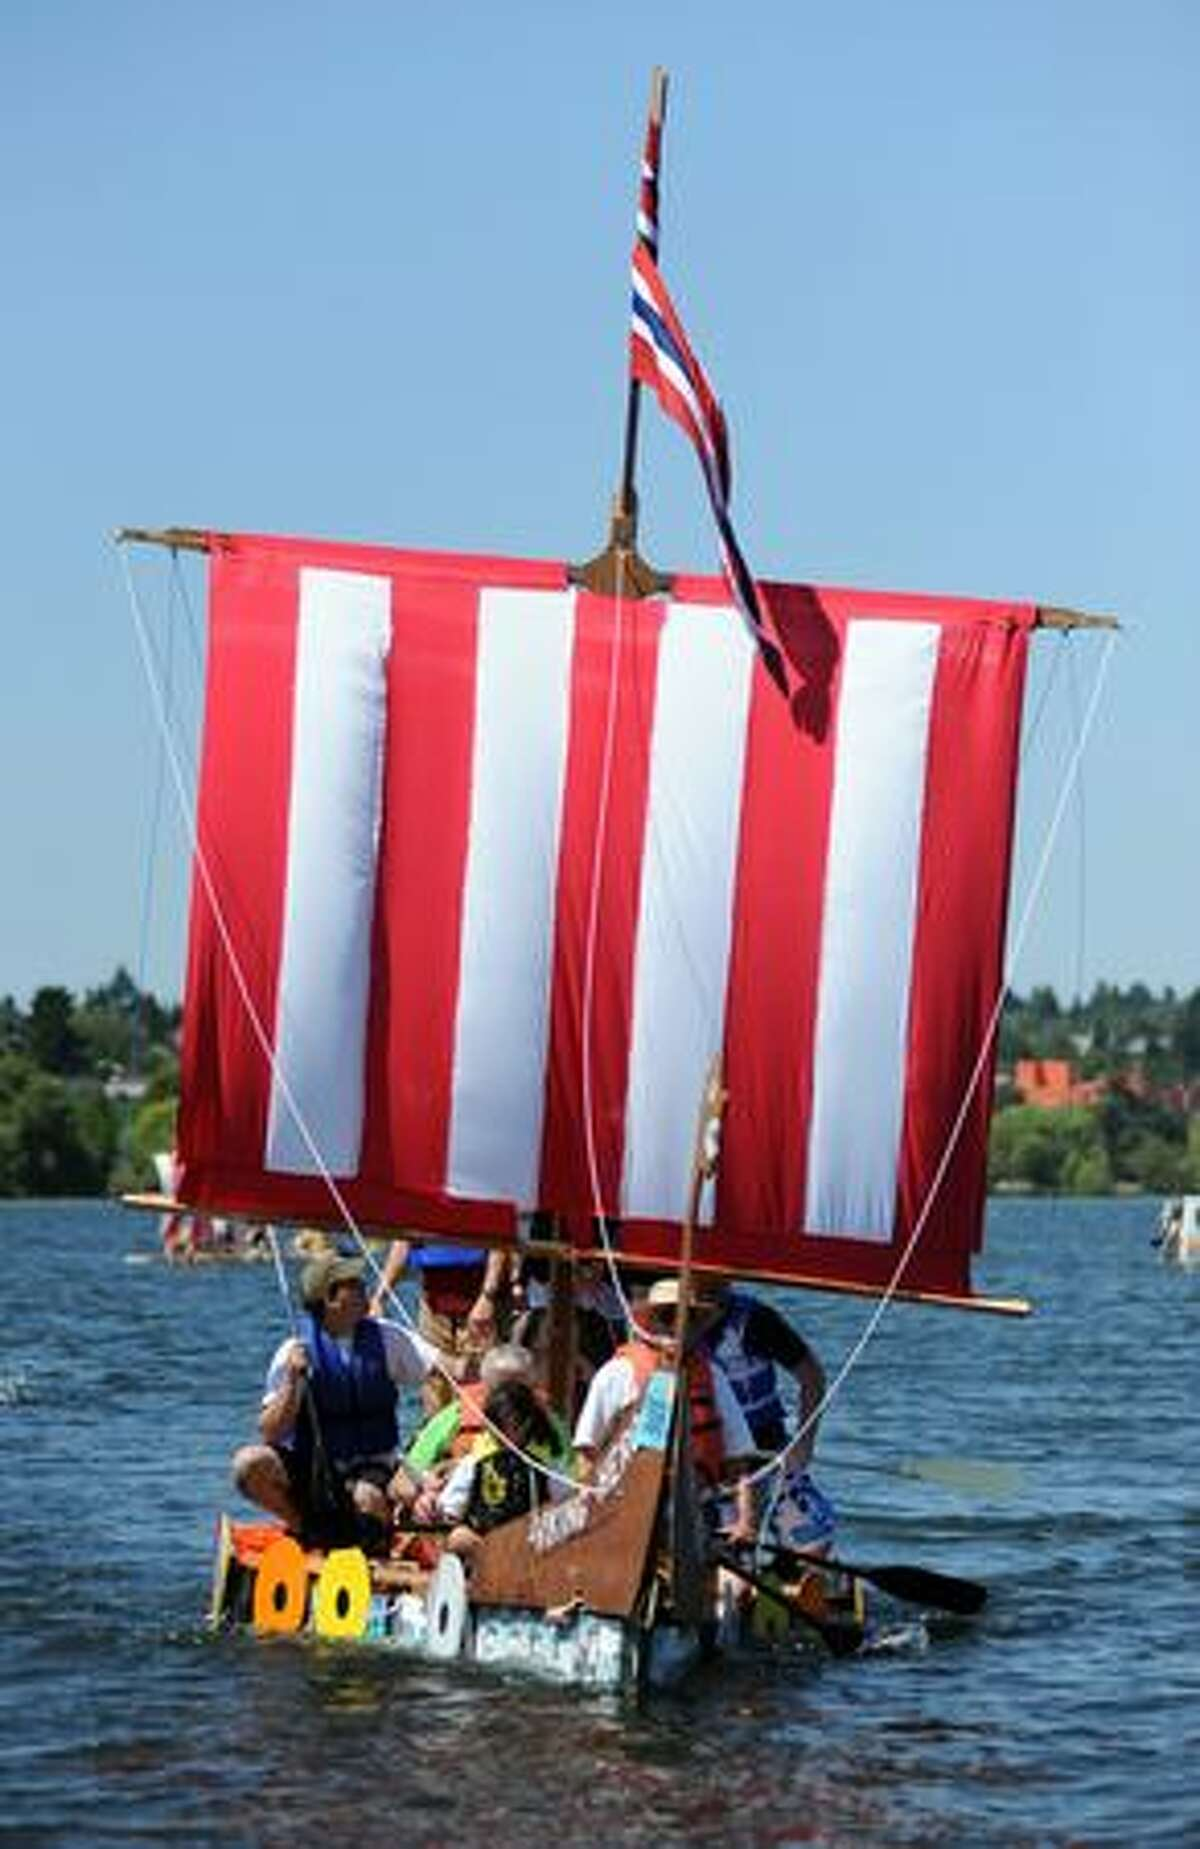 The Viking Hero competes in Seattle's Seafair Milk Carton Derby on Green Lake Saturday.